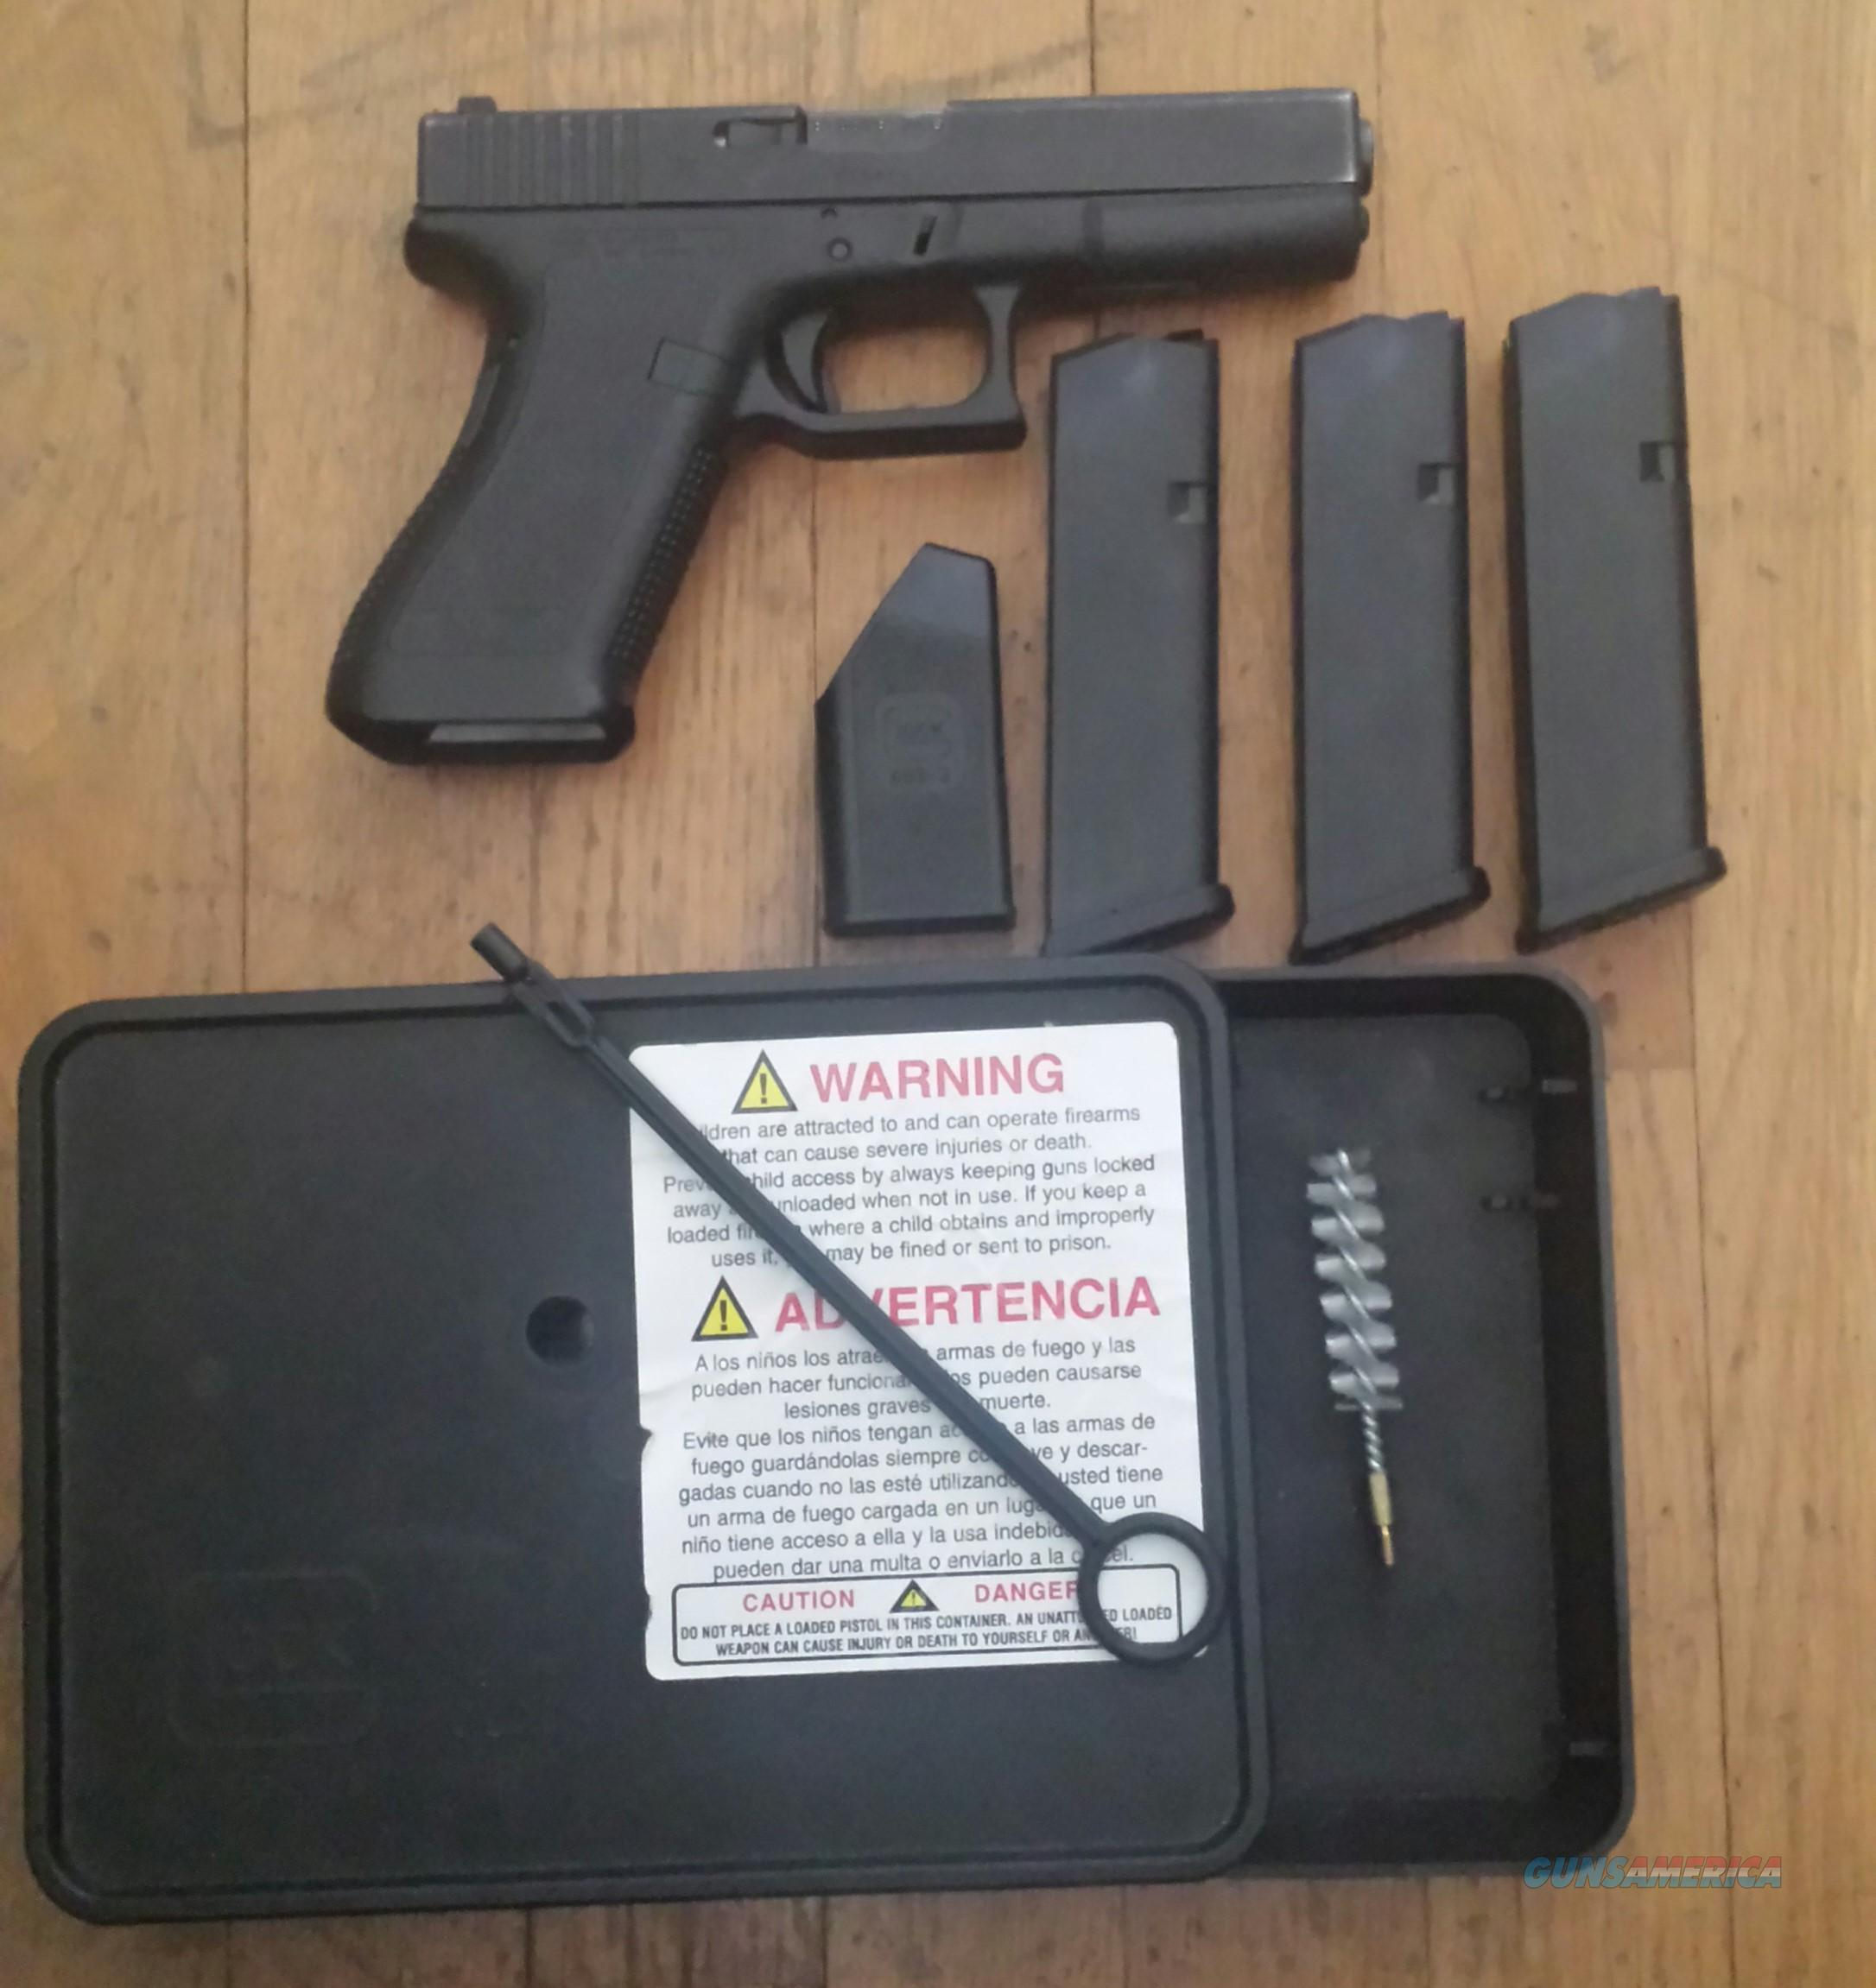 Glock Model 22,  .40 cal, Gen 2, Night Sites  Guns > Pistols > Glock Pistols > 22